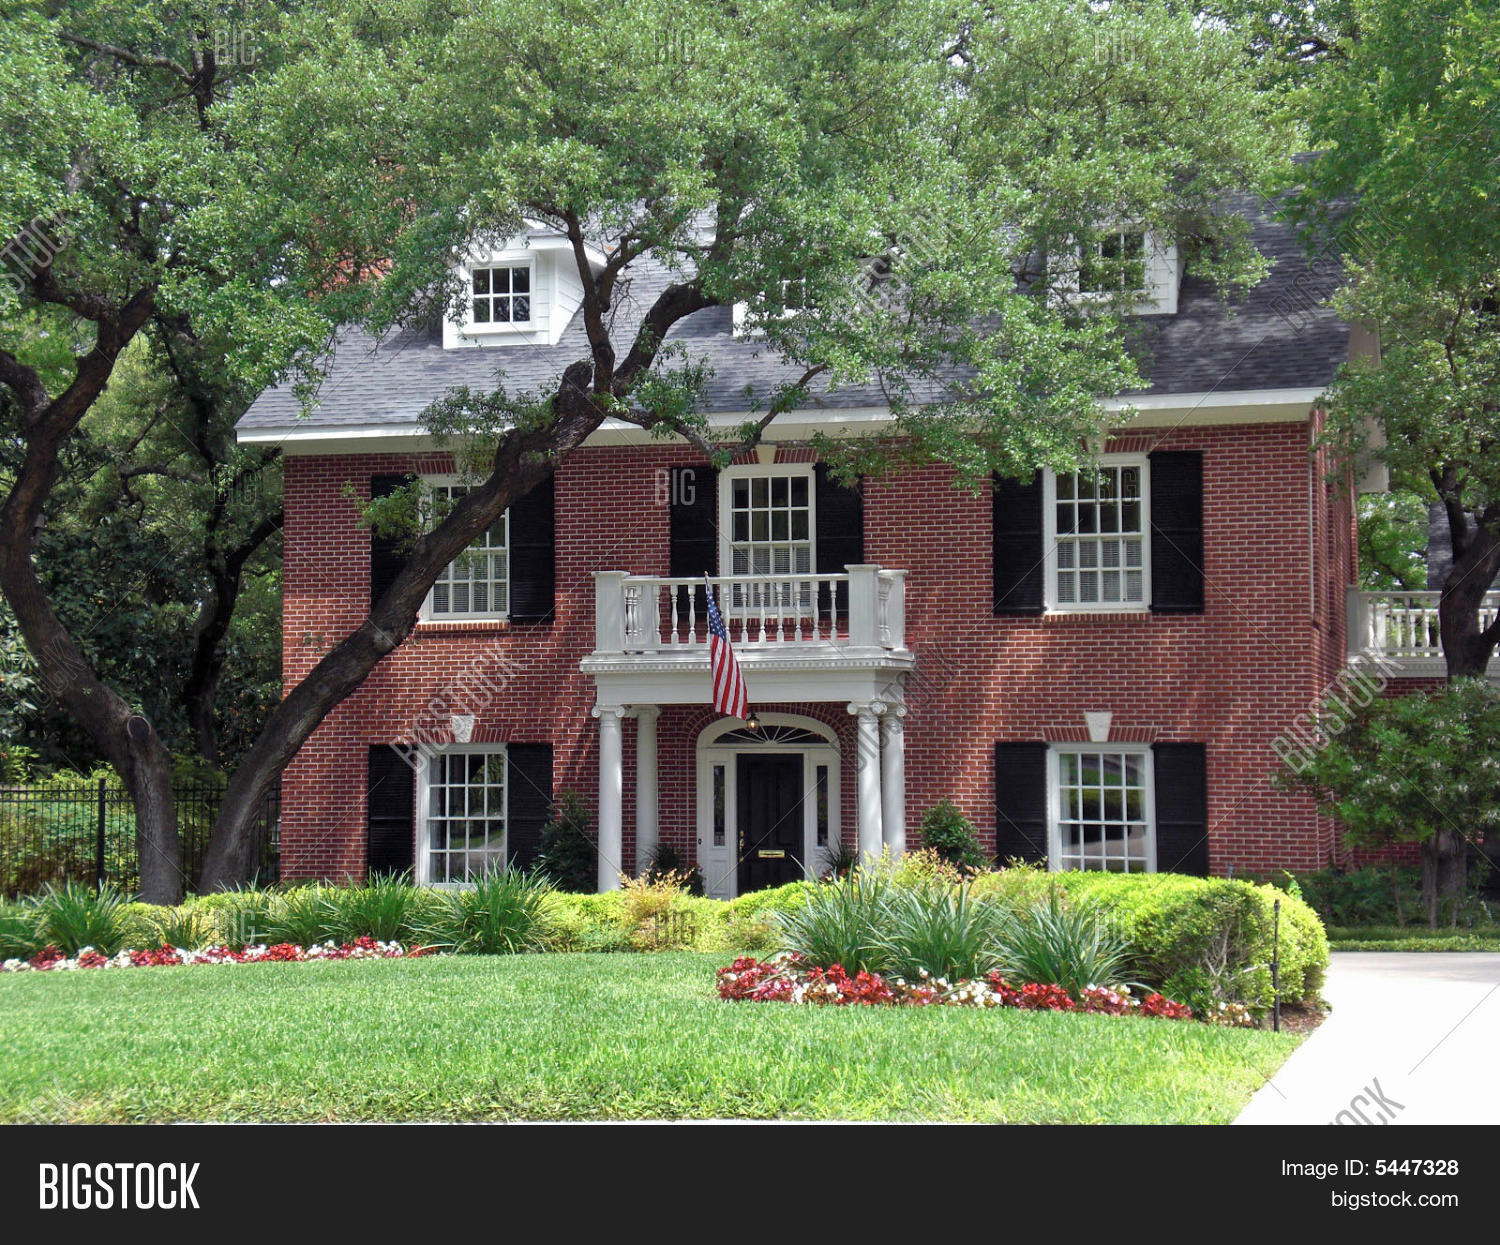 Miraculous Colonial Style House Stock Photo Stock Images Bigstock Inspirational Interior Design Netriciaus